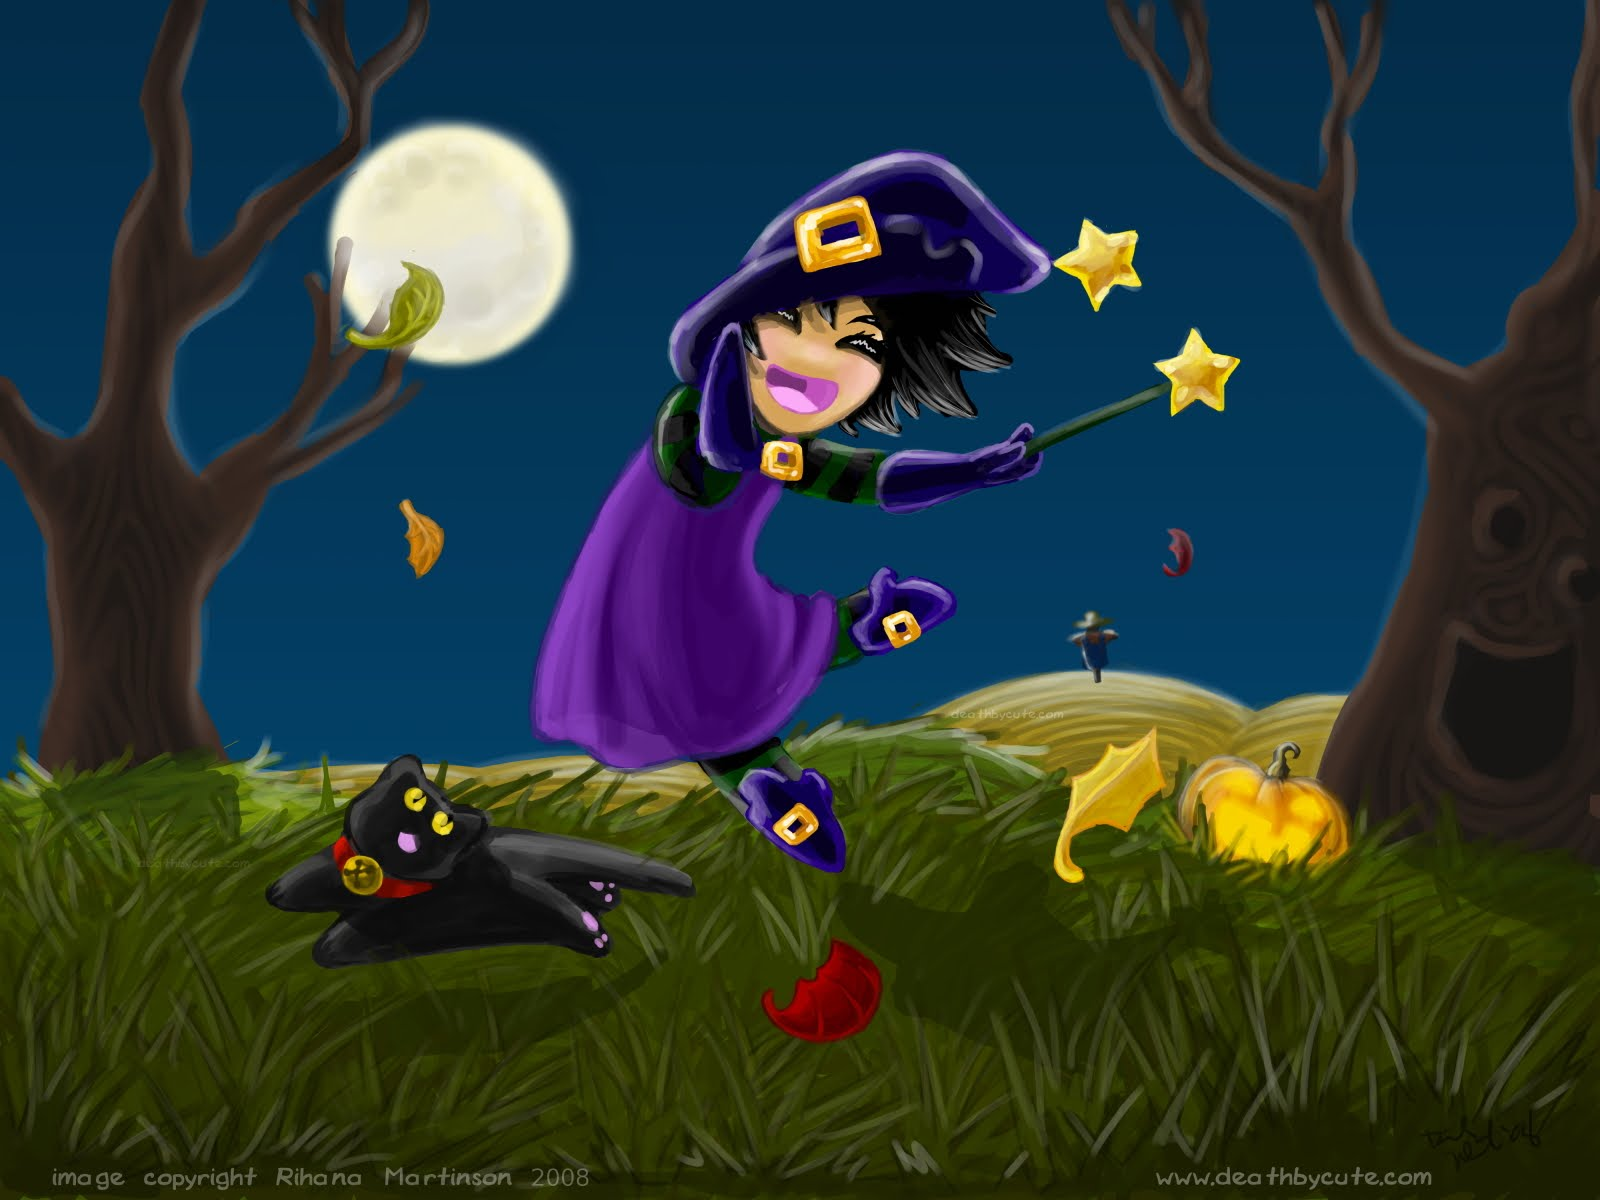 http://3.bp.blogspot.com/_3_2FCxXqZPQ/THFA7d3SYyI/AAAAAAAAP-I/DmMJeWKXuwI/s1600/Halloween-Holiday-Wallpapers.jpg